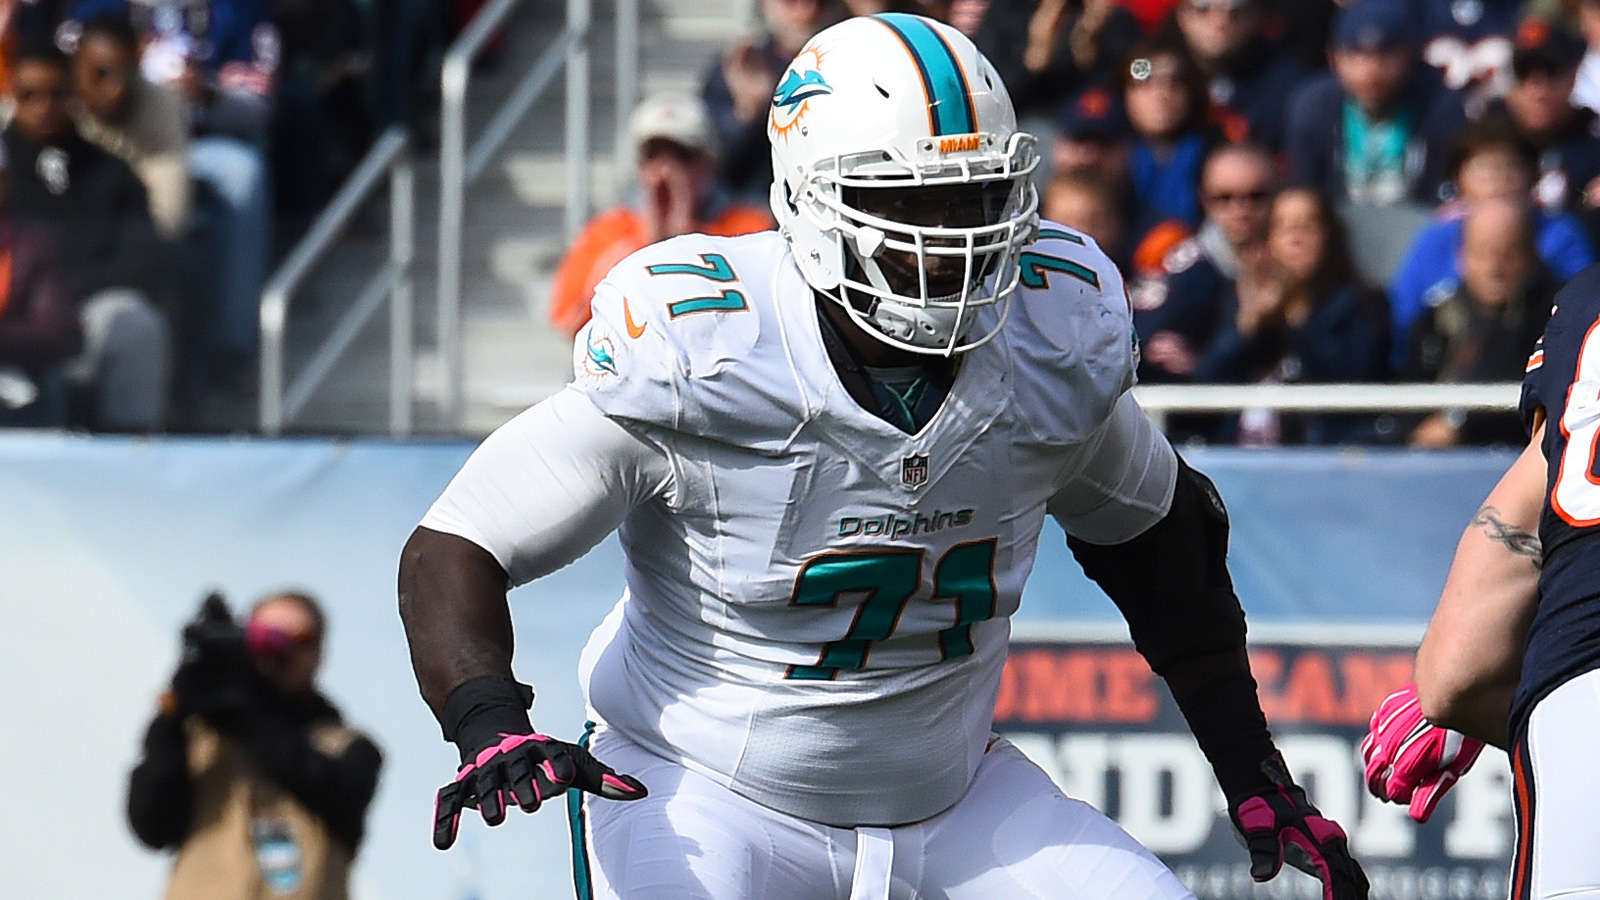 Jaguars reportedly interested in Pro Bowl OT Branden Albert